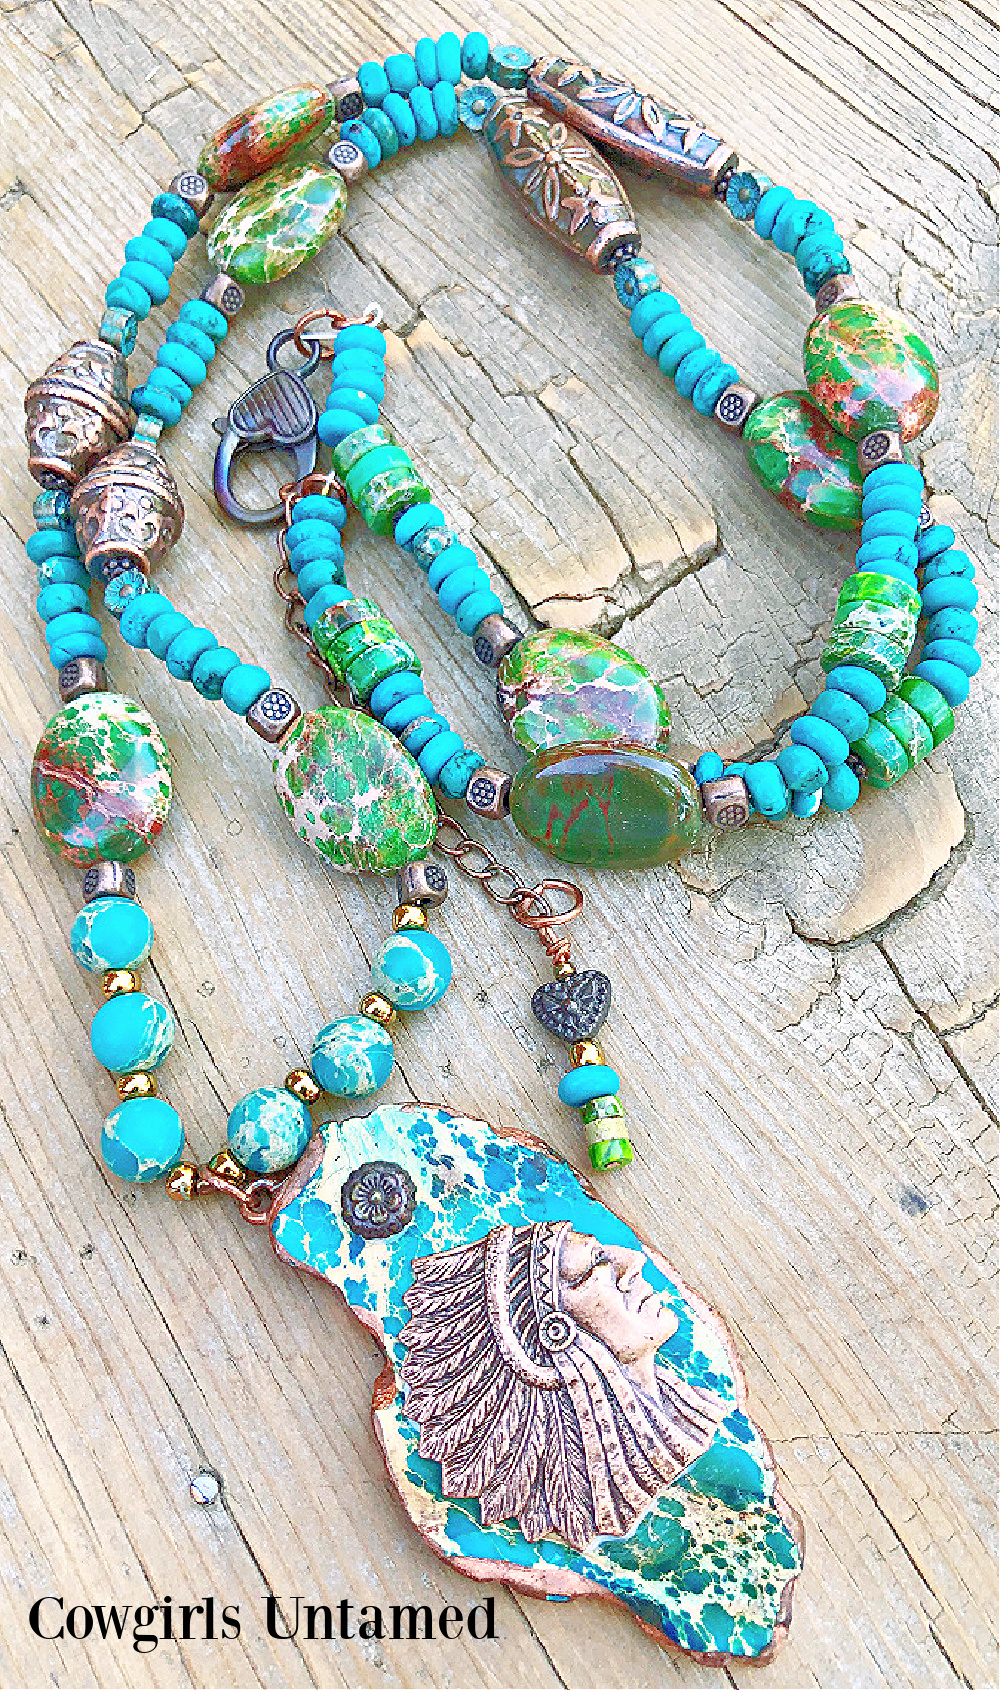 THE COPPER INDIAN NECKLACE Copper Indian Chief on Large Jasper Pendant Gemstone Beaded Necklace